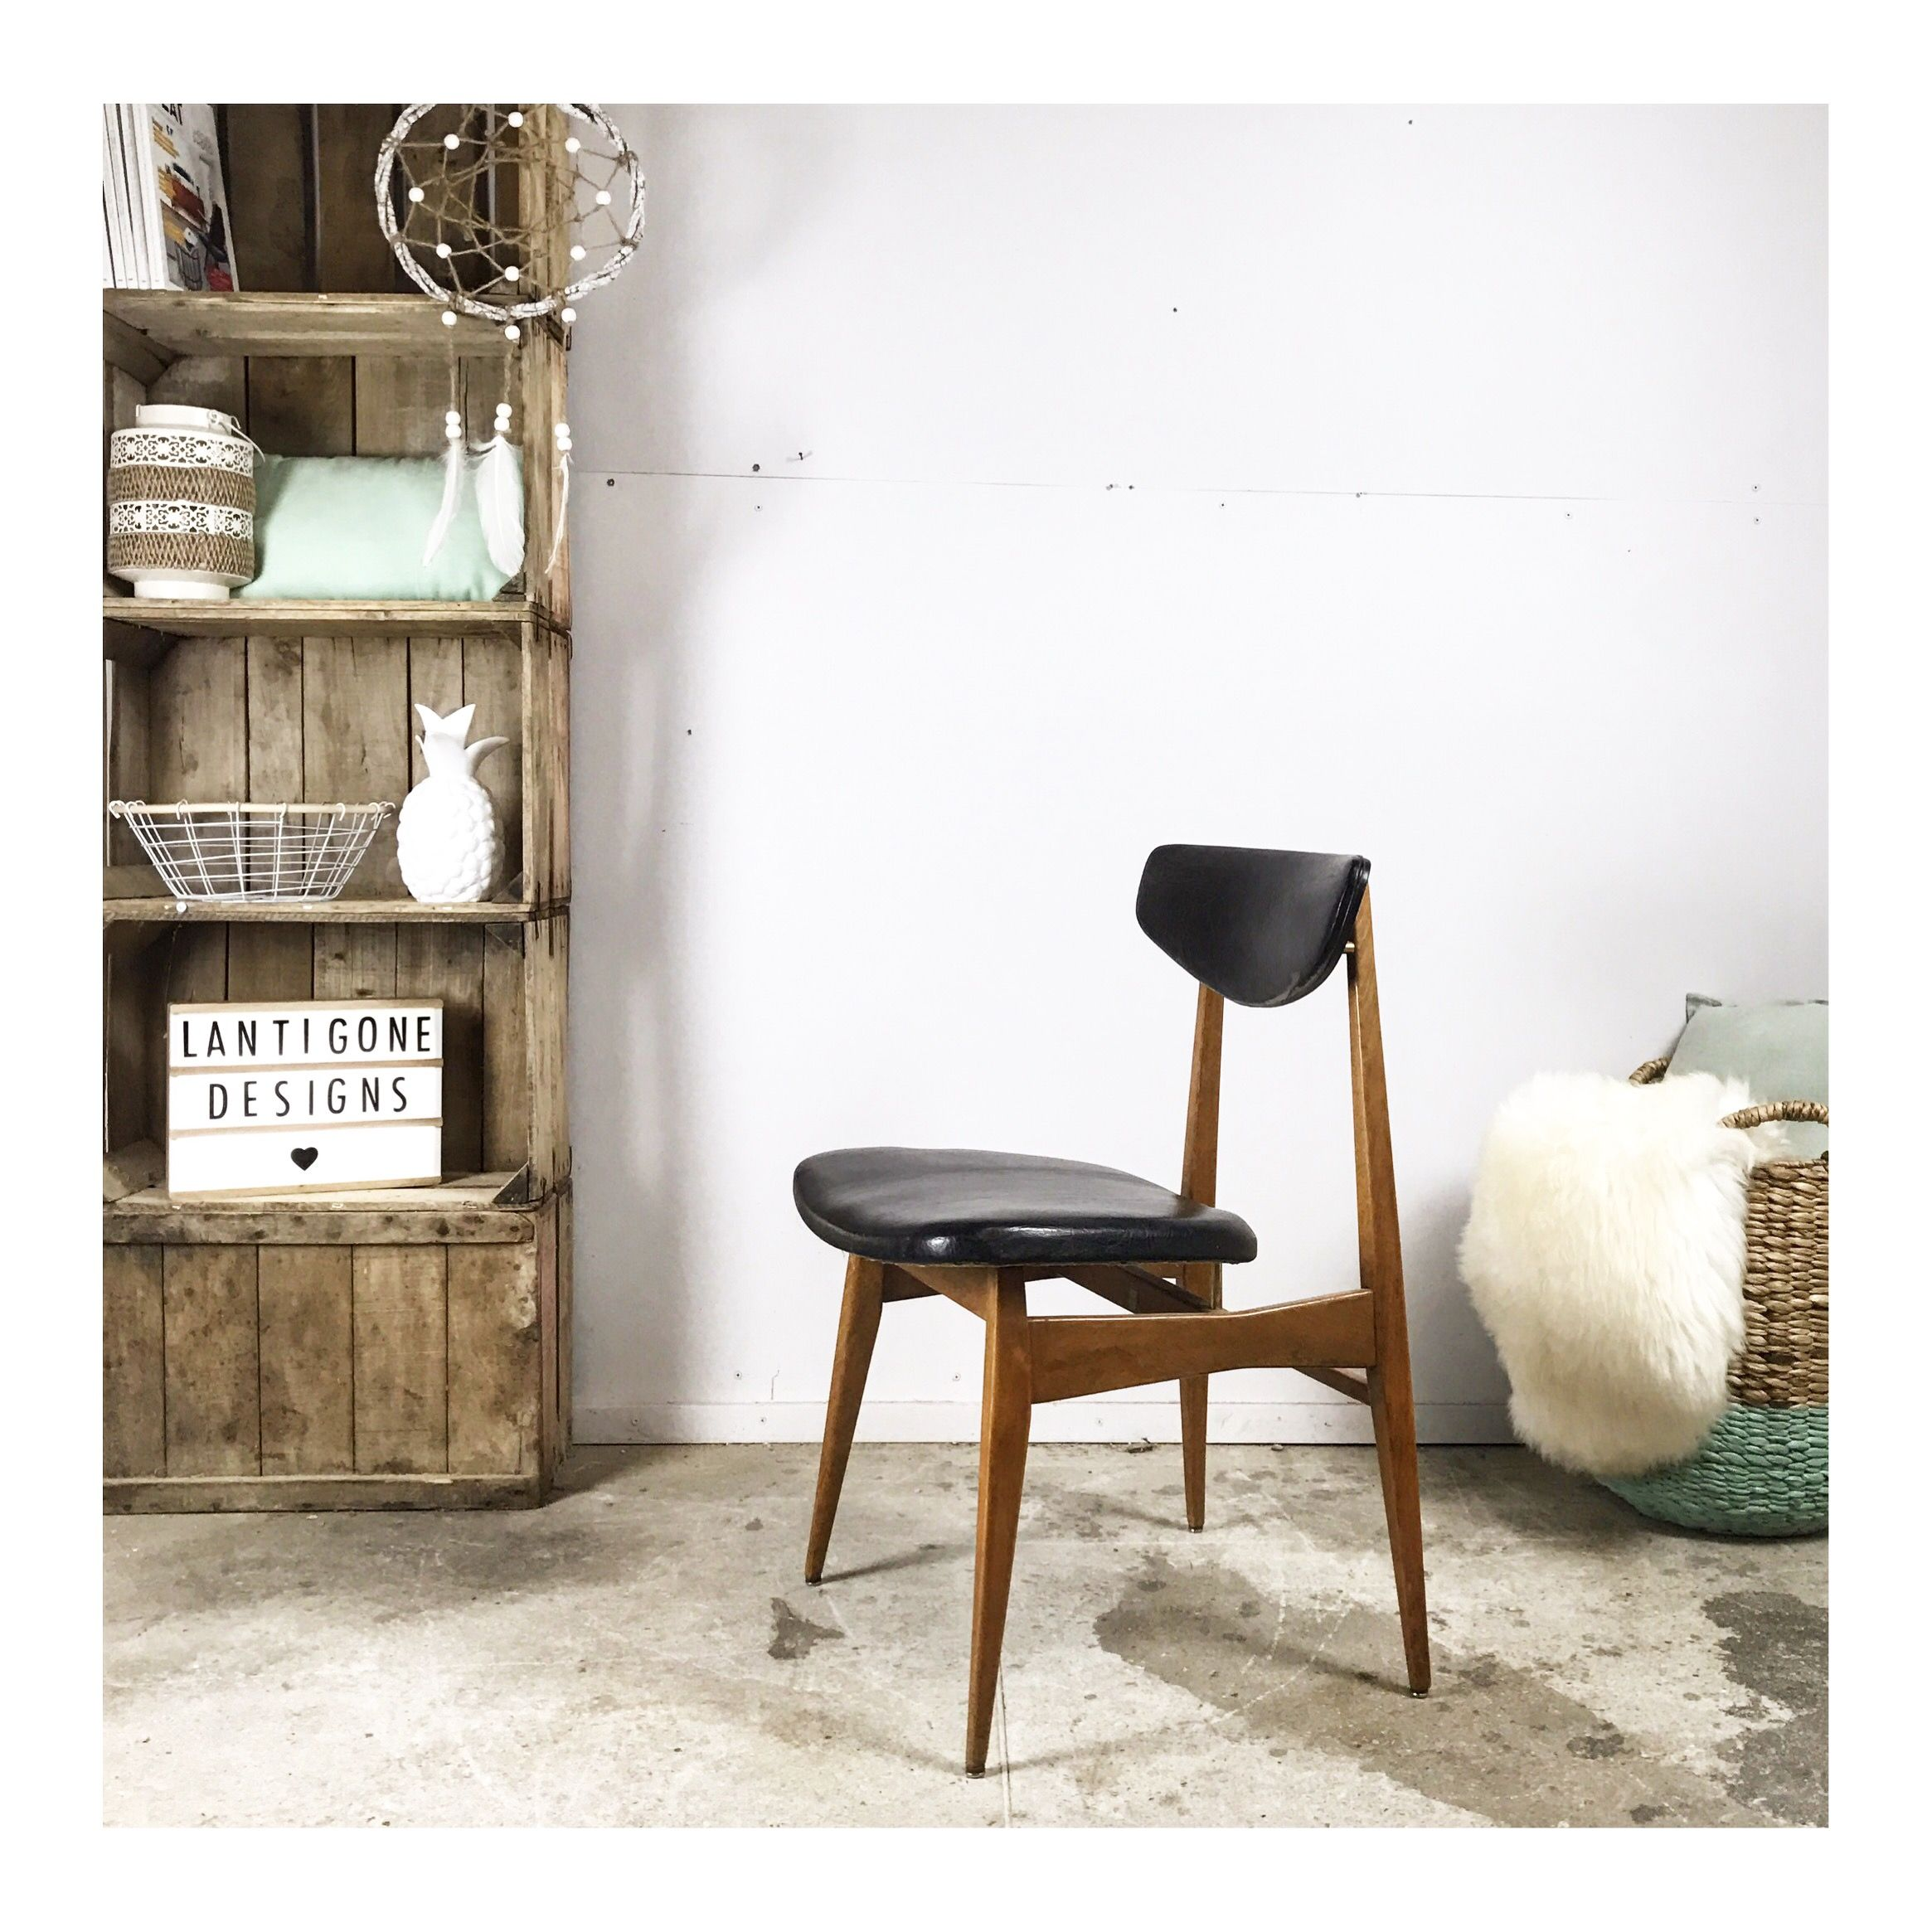 chaise vintage danoise scandinave photography instagood. Black Bedroom Furniture Sets. Home Design Ideas